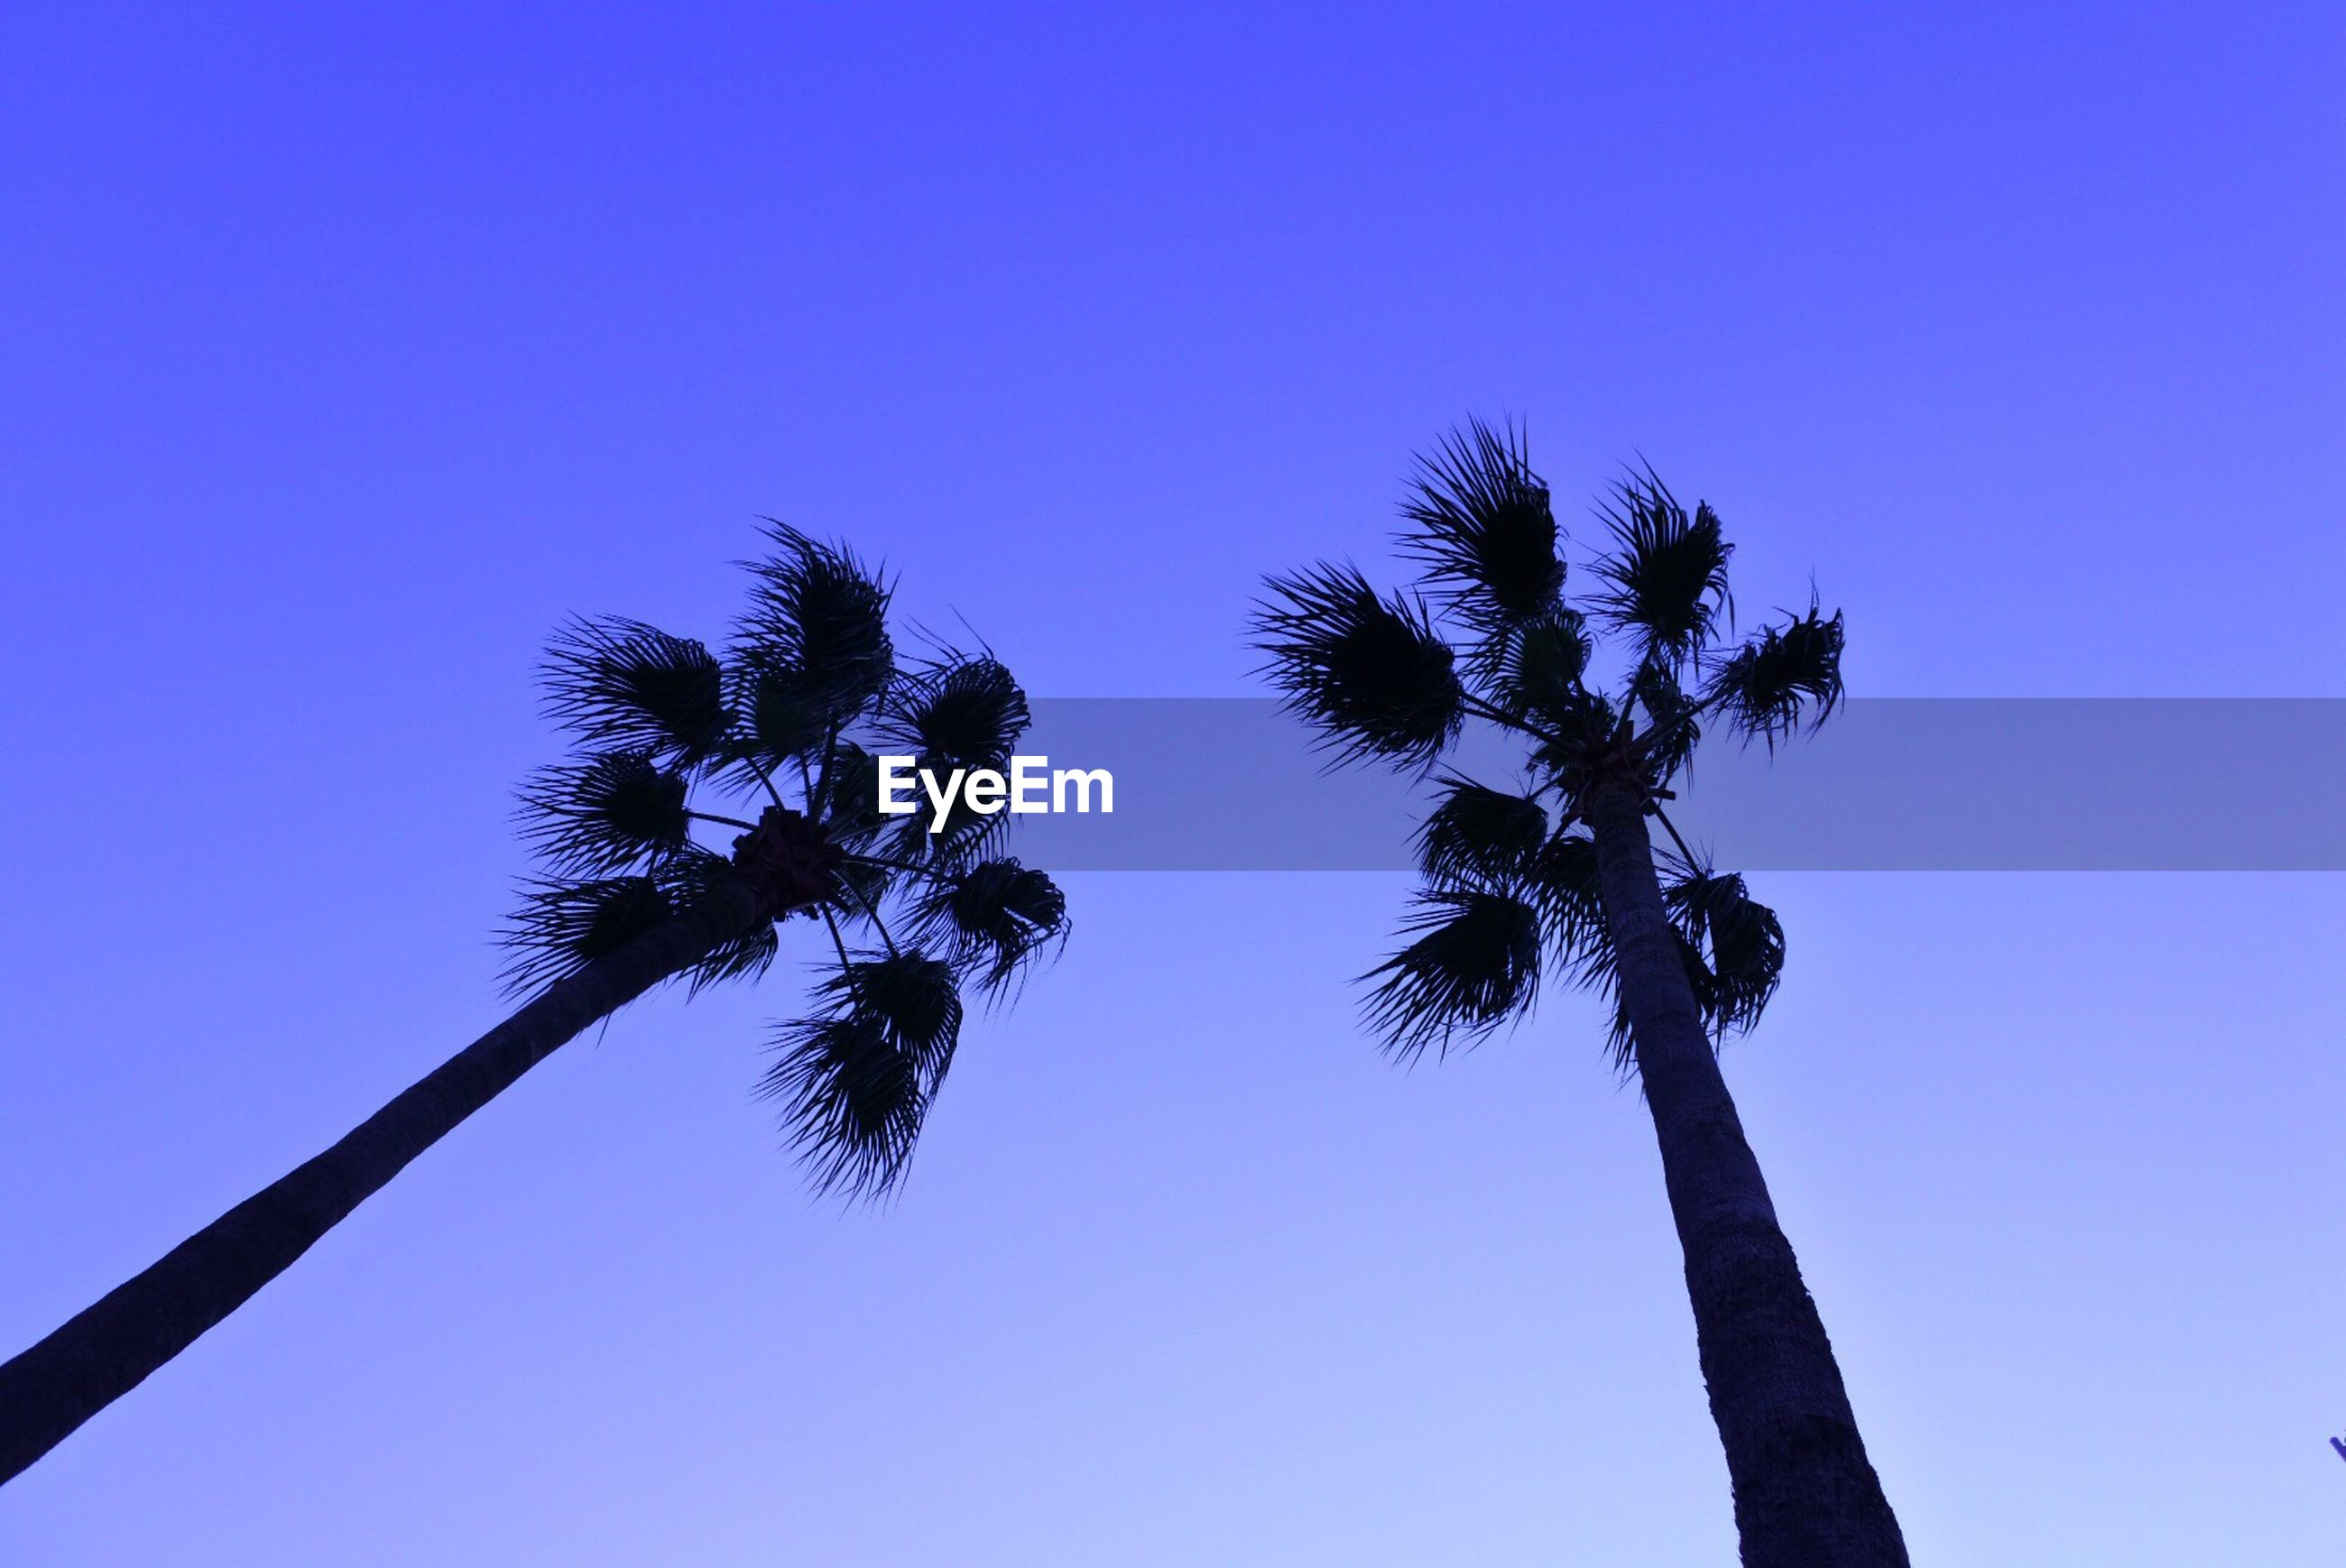 LOW ANGLE VIEW OF SILHOUETTE TREE AGAINST BLUE SKY